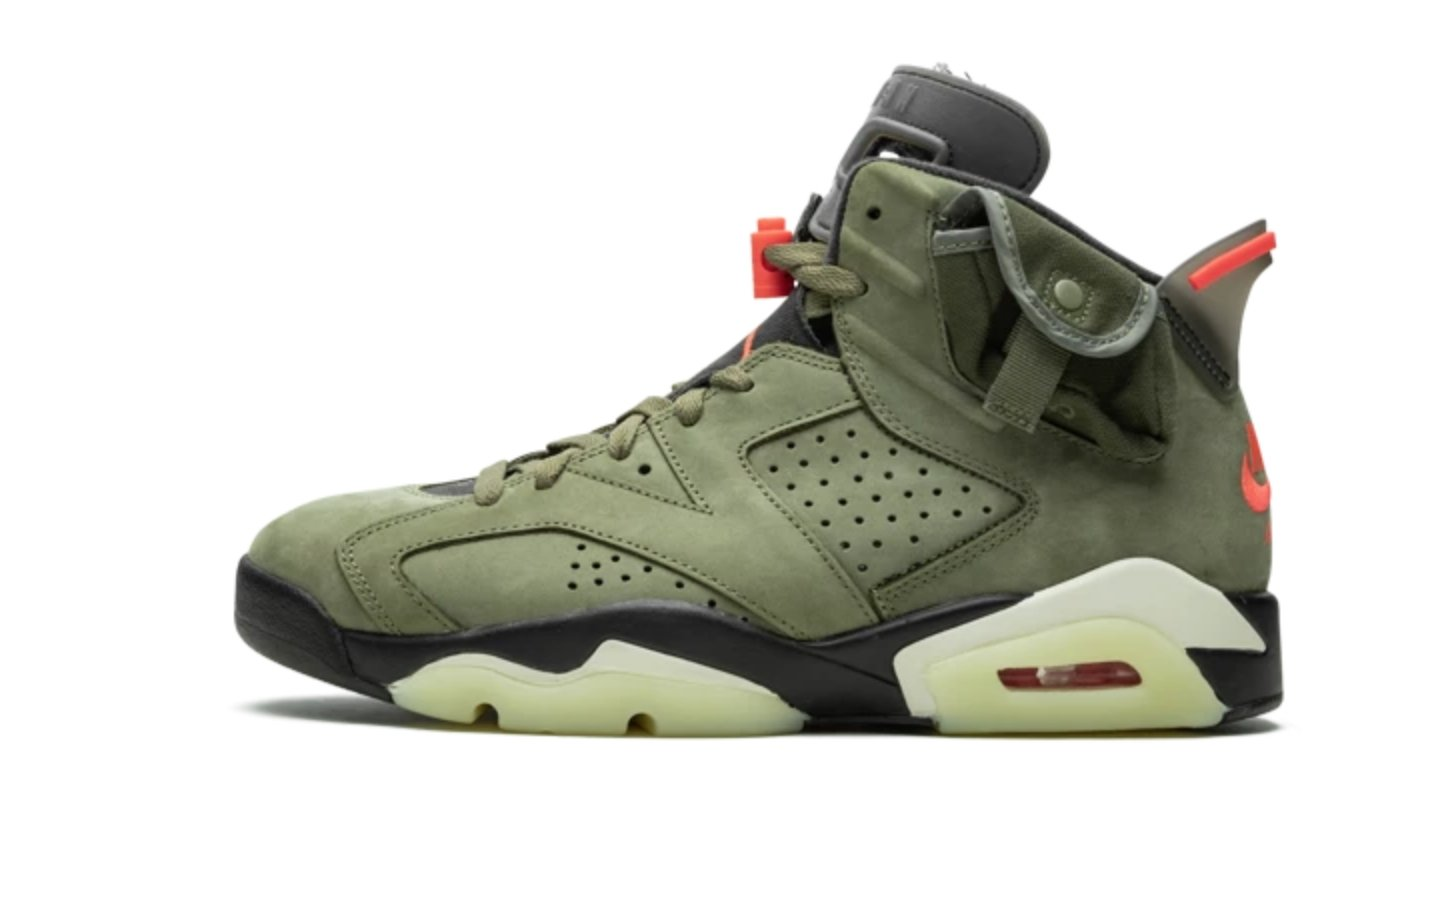 cozy fresh footwear exclusive shoes Air Jordan 6 Travis Scott Medium - Nike Sneakers Limited Edition